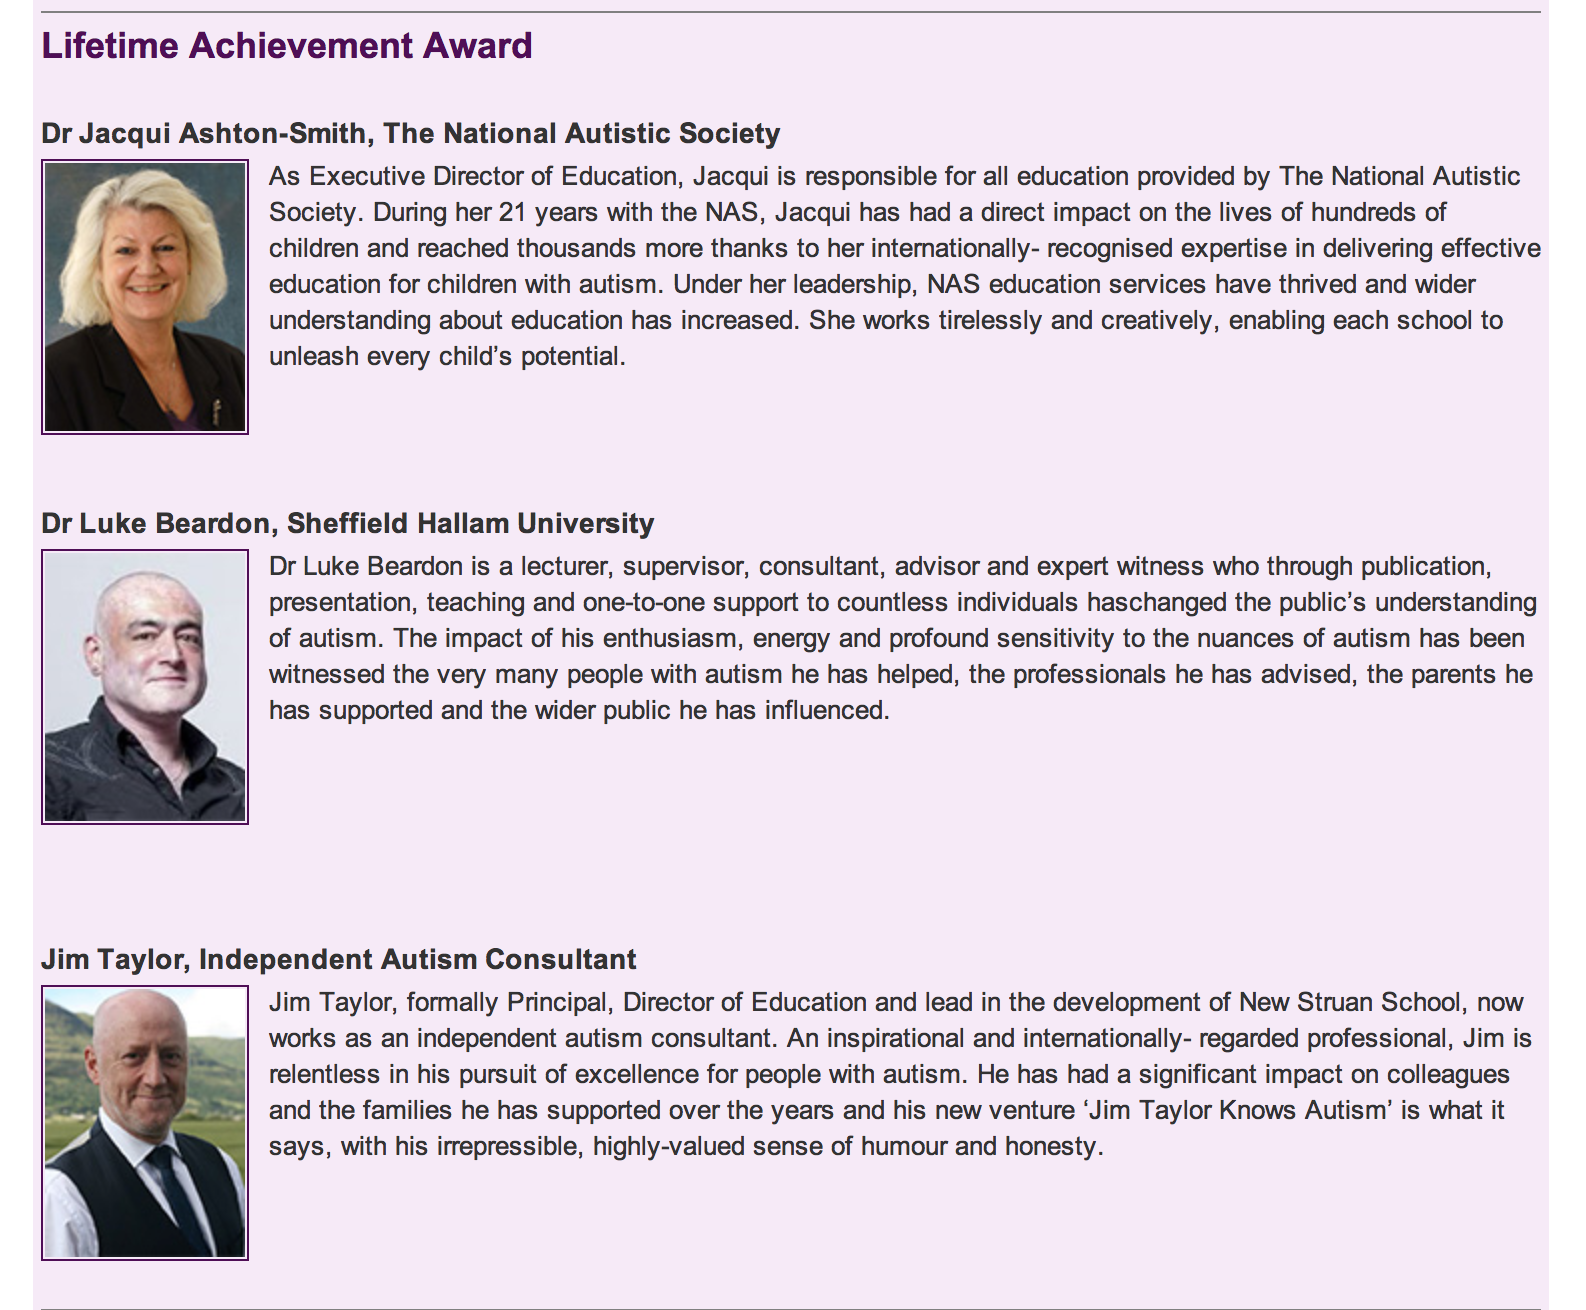 The lifetime achievement nominations by the national autistic society